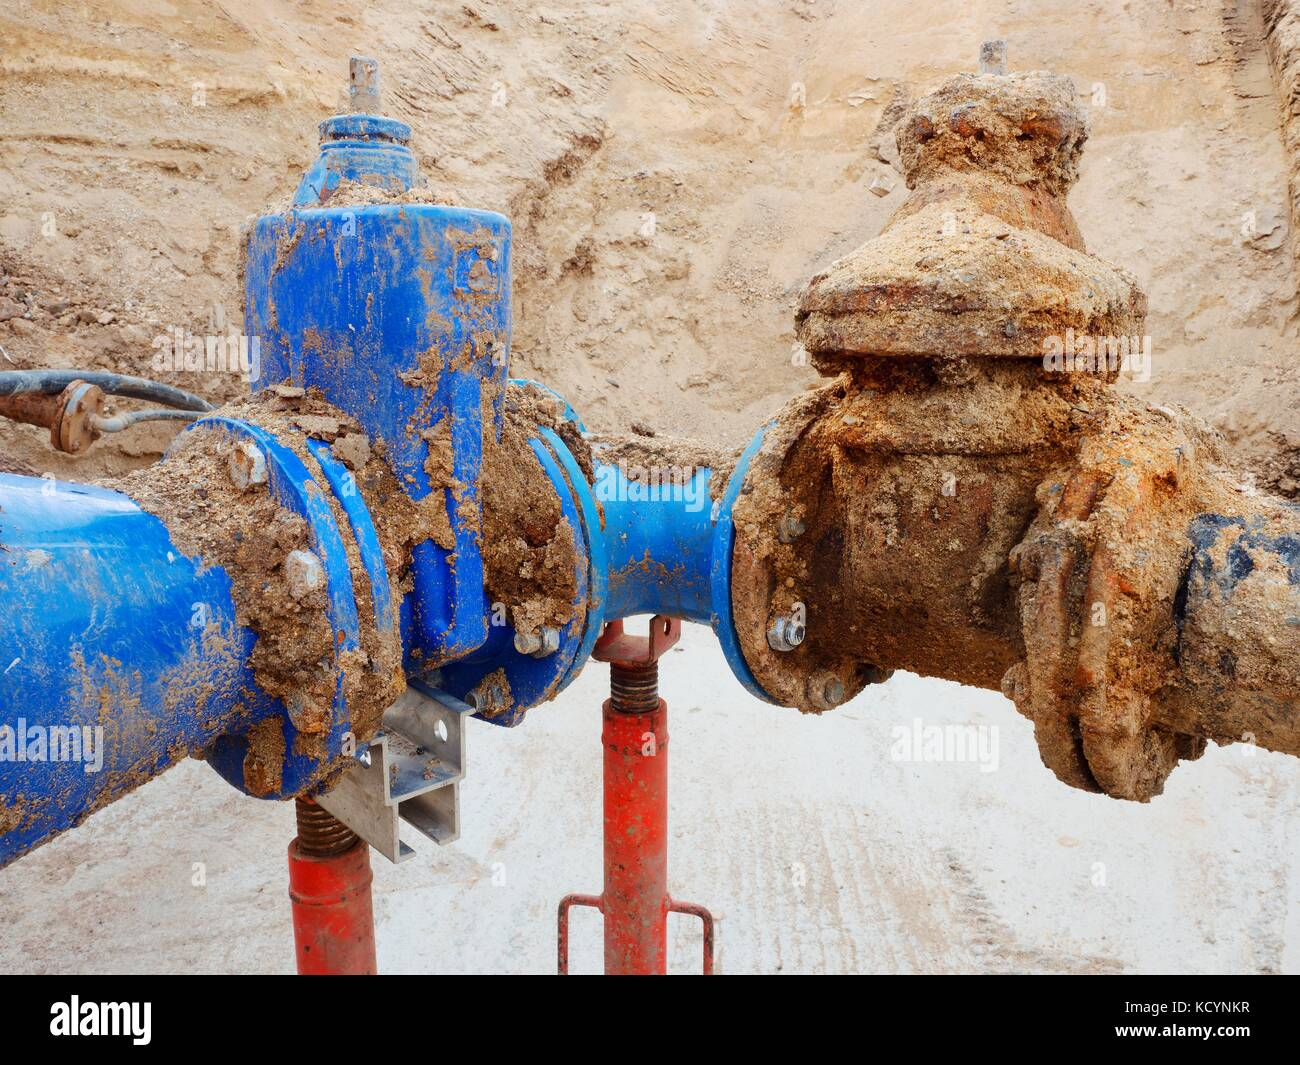 Old big drink water pipes joined with new blue gate valves and reduction joint members. Finished repaired piping - Stock Image